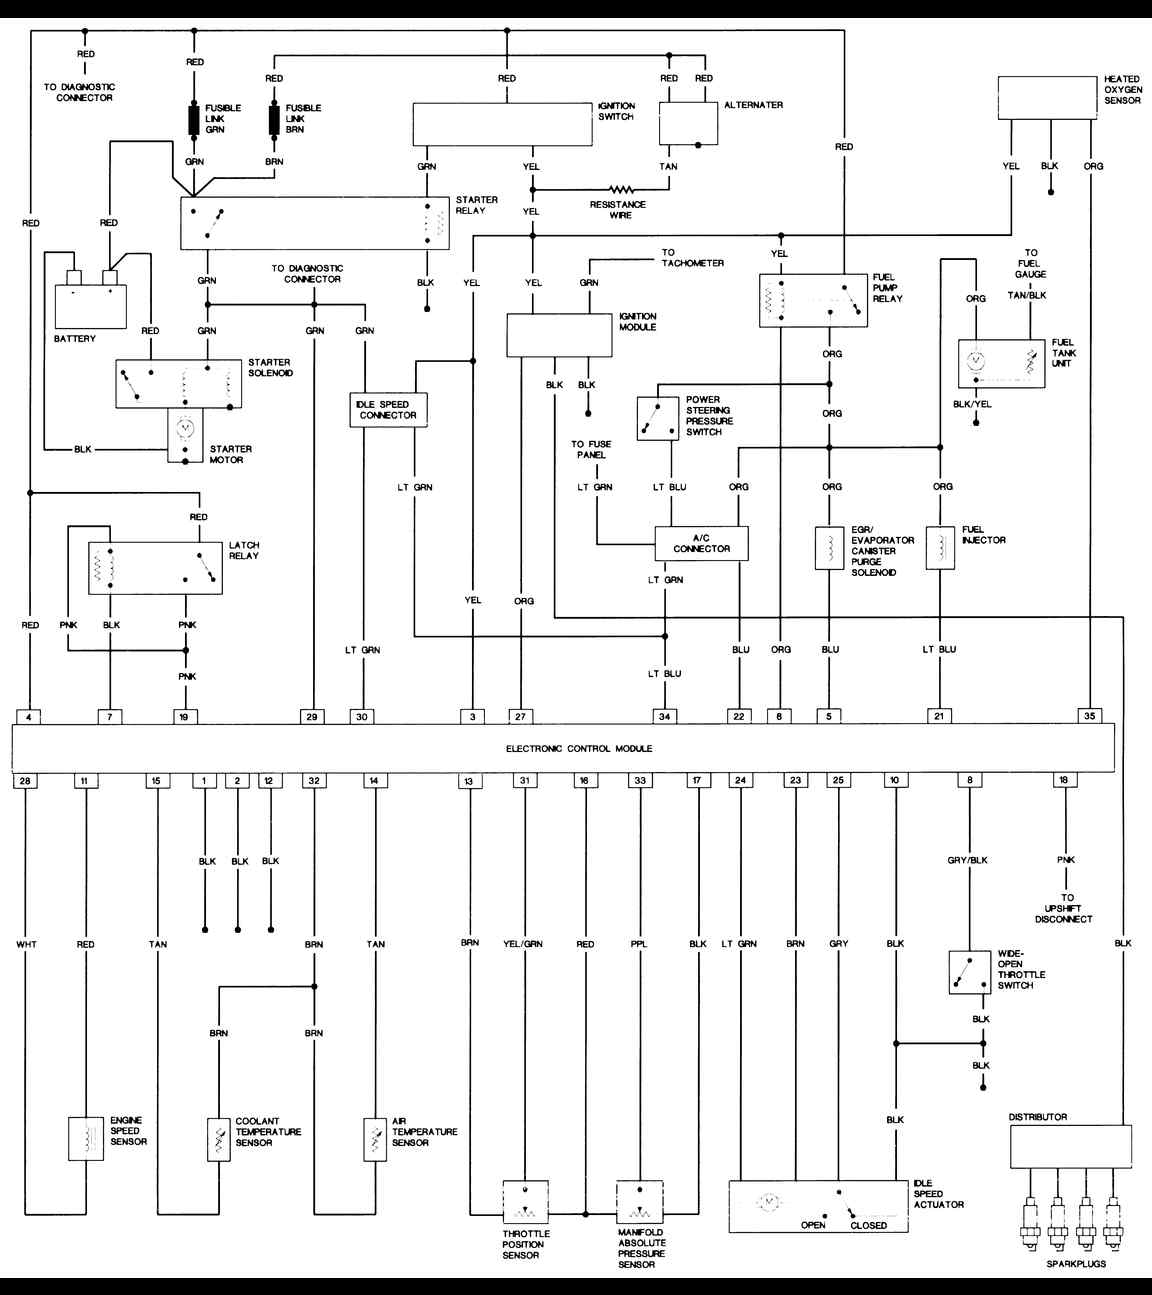 1988 yj wiring diagram   22 wiring diagram images